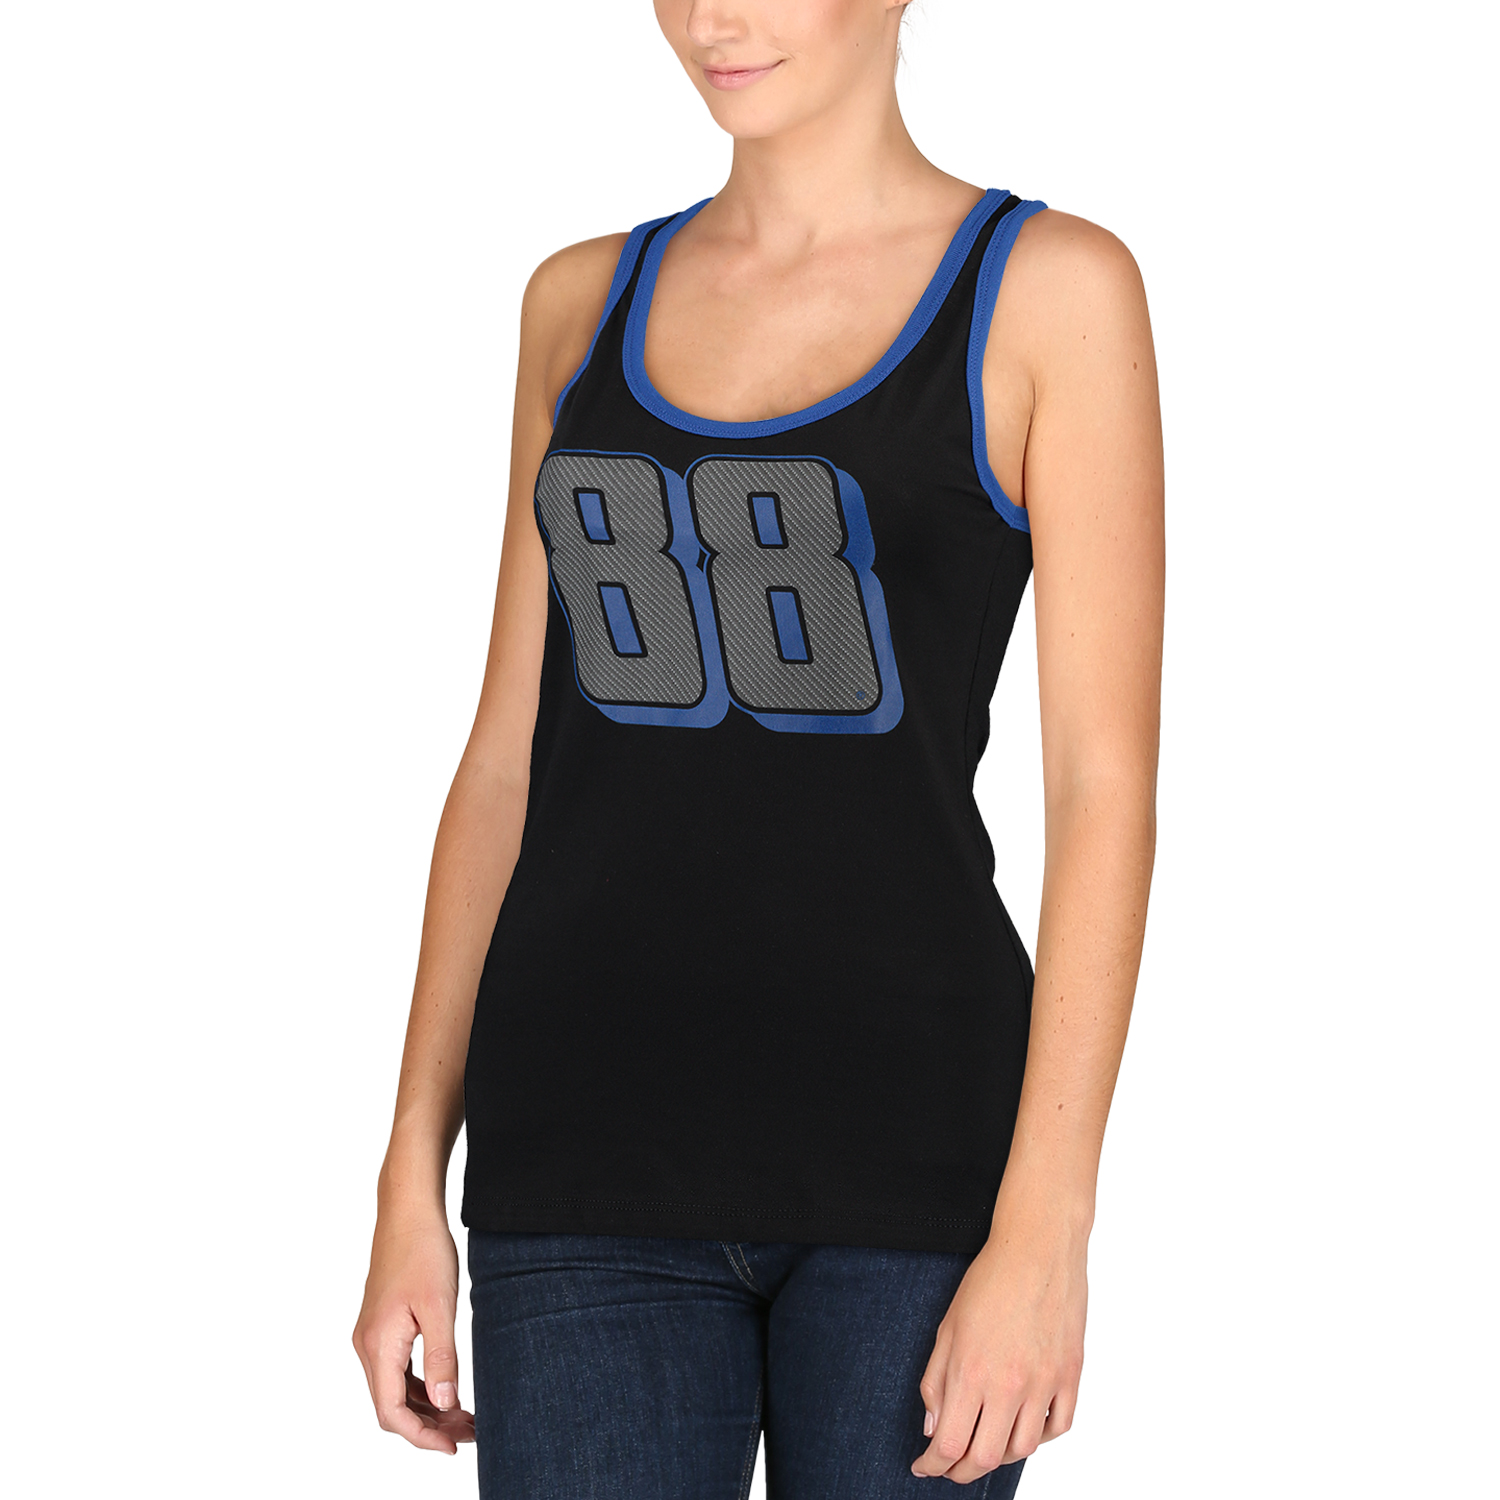 Dale Earnhardt Jr. Women's Stealth Pop Racerback Tank Top - Black/Blue